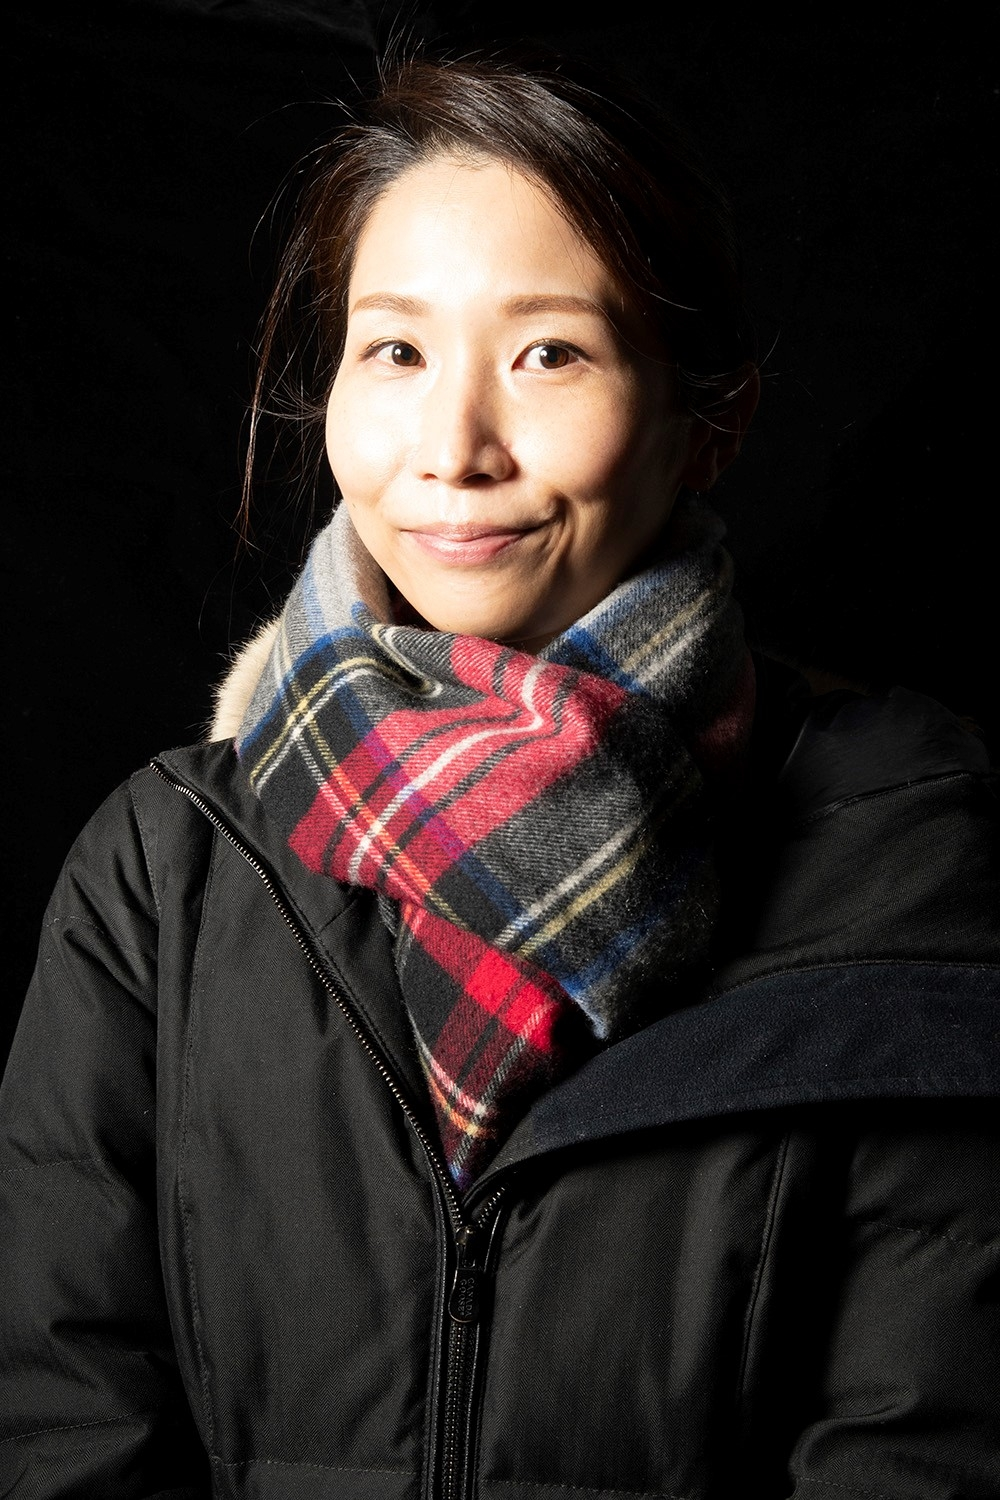 An Asian woman with her dark hair pulled back from her face looks at the camera. She is smiling slightly and wears a red, grey, blue, and yellow plaid scarf tucked into a black winter jacker.